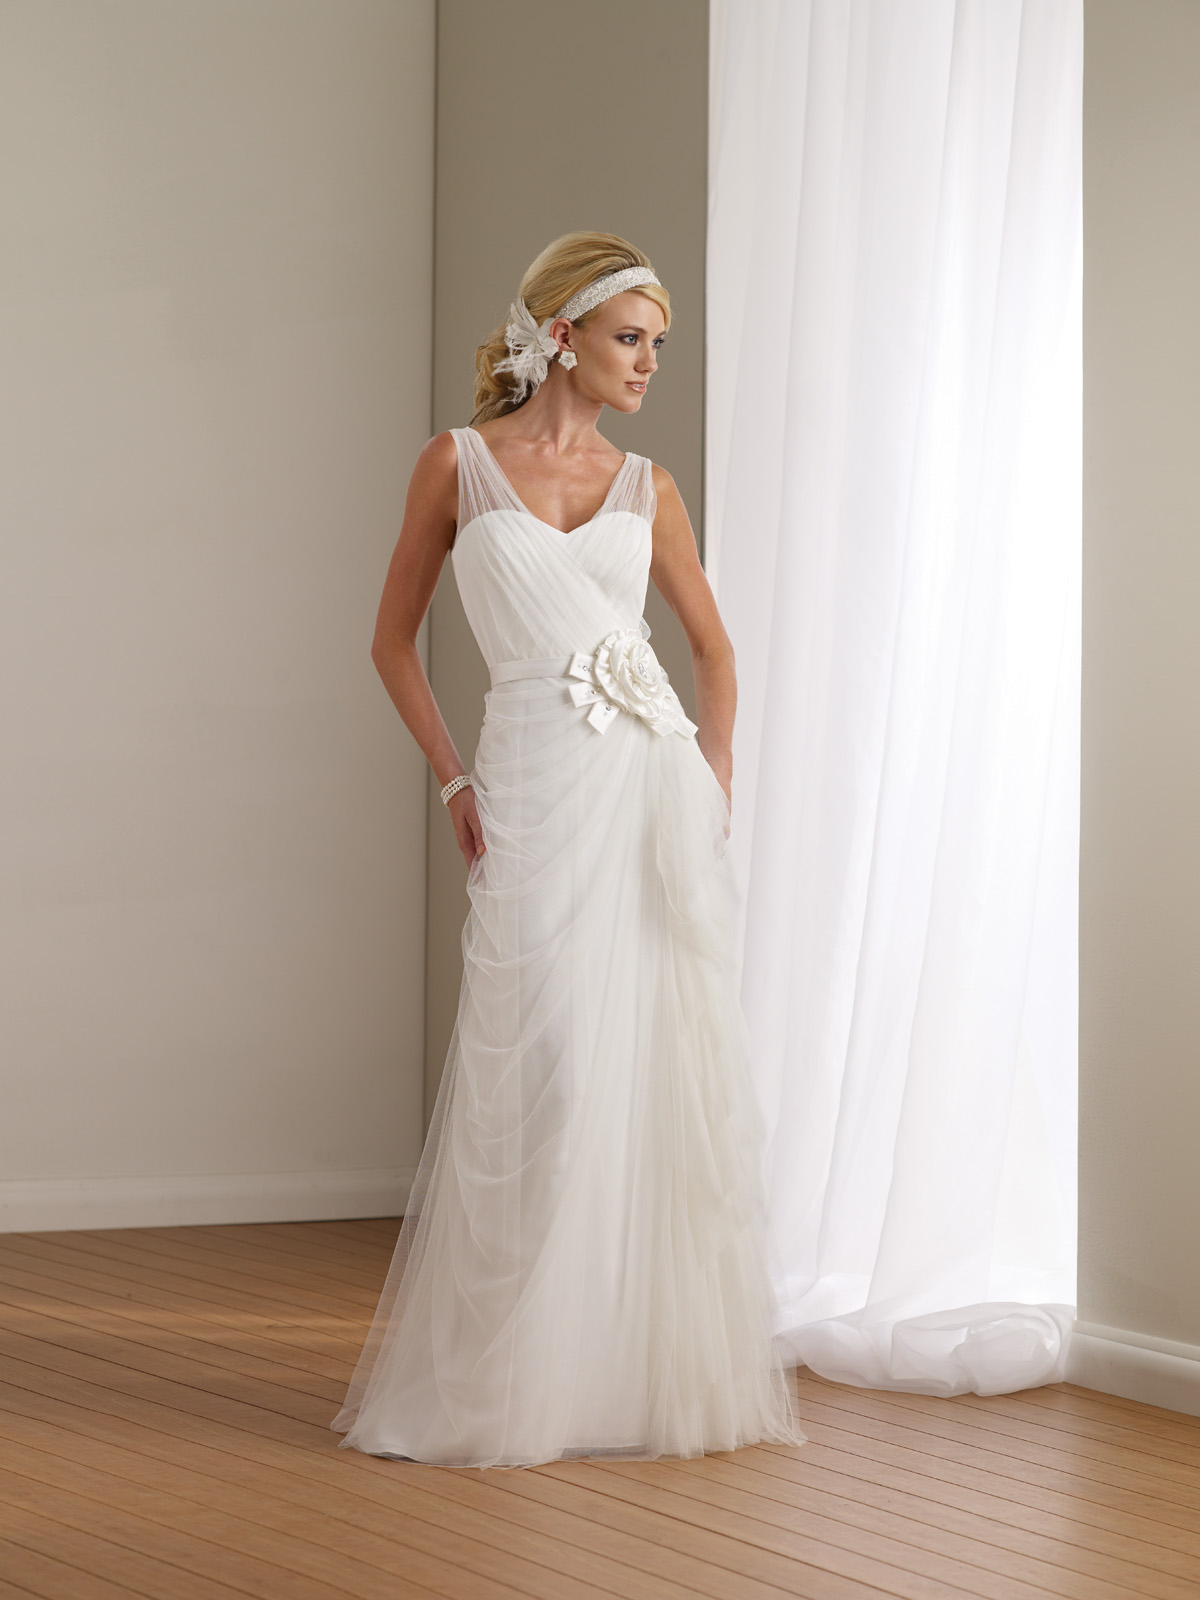 2012-wedding-dress-destinations-mon-cheri-casual-bridal-gowns-112103.original